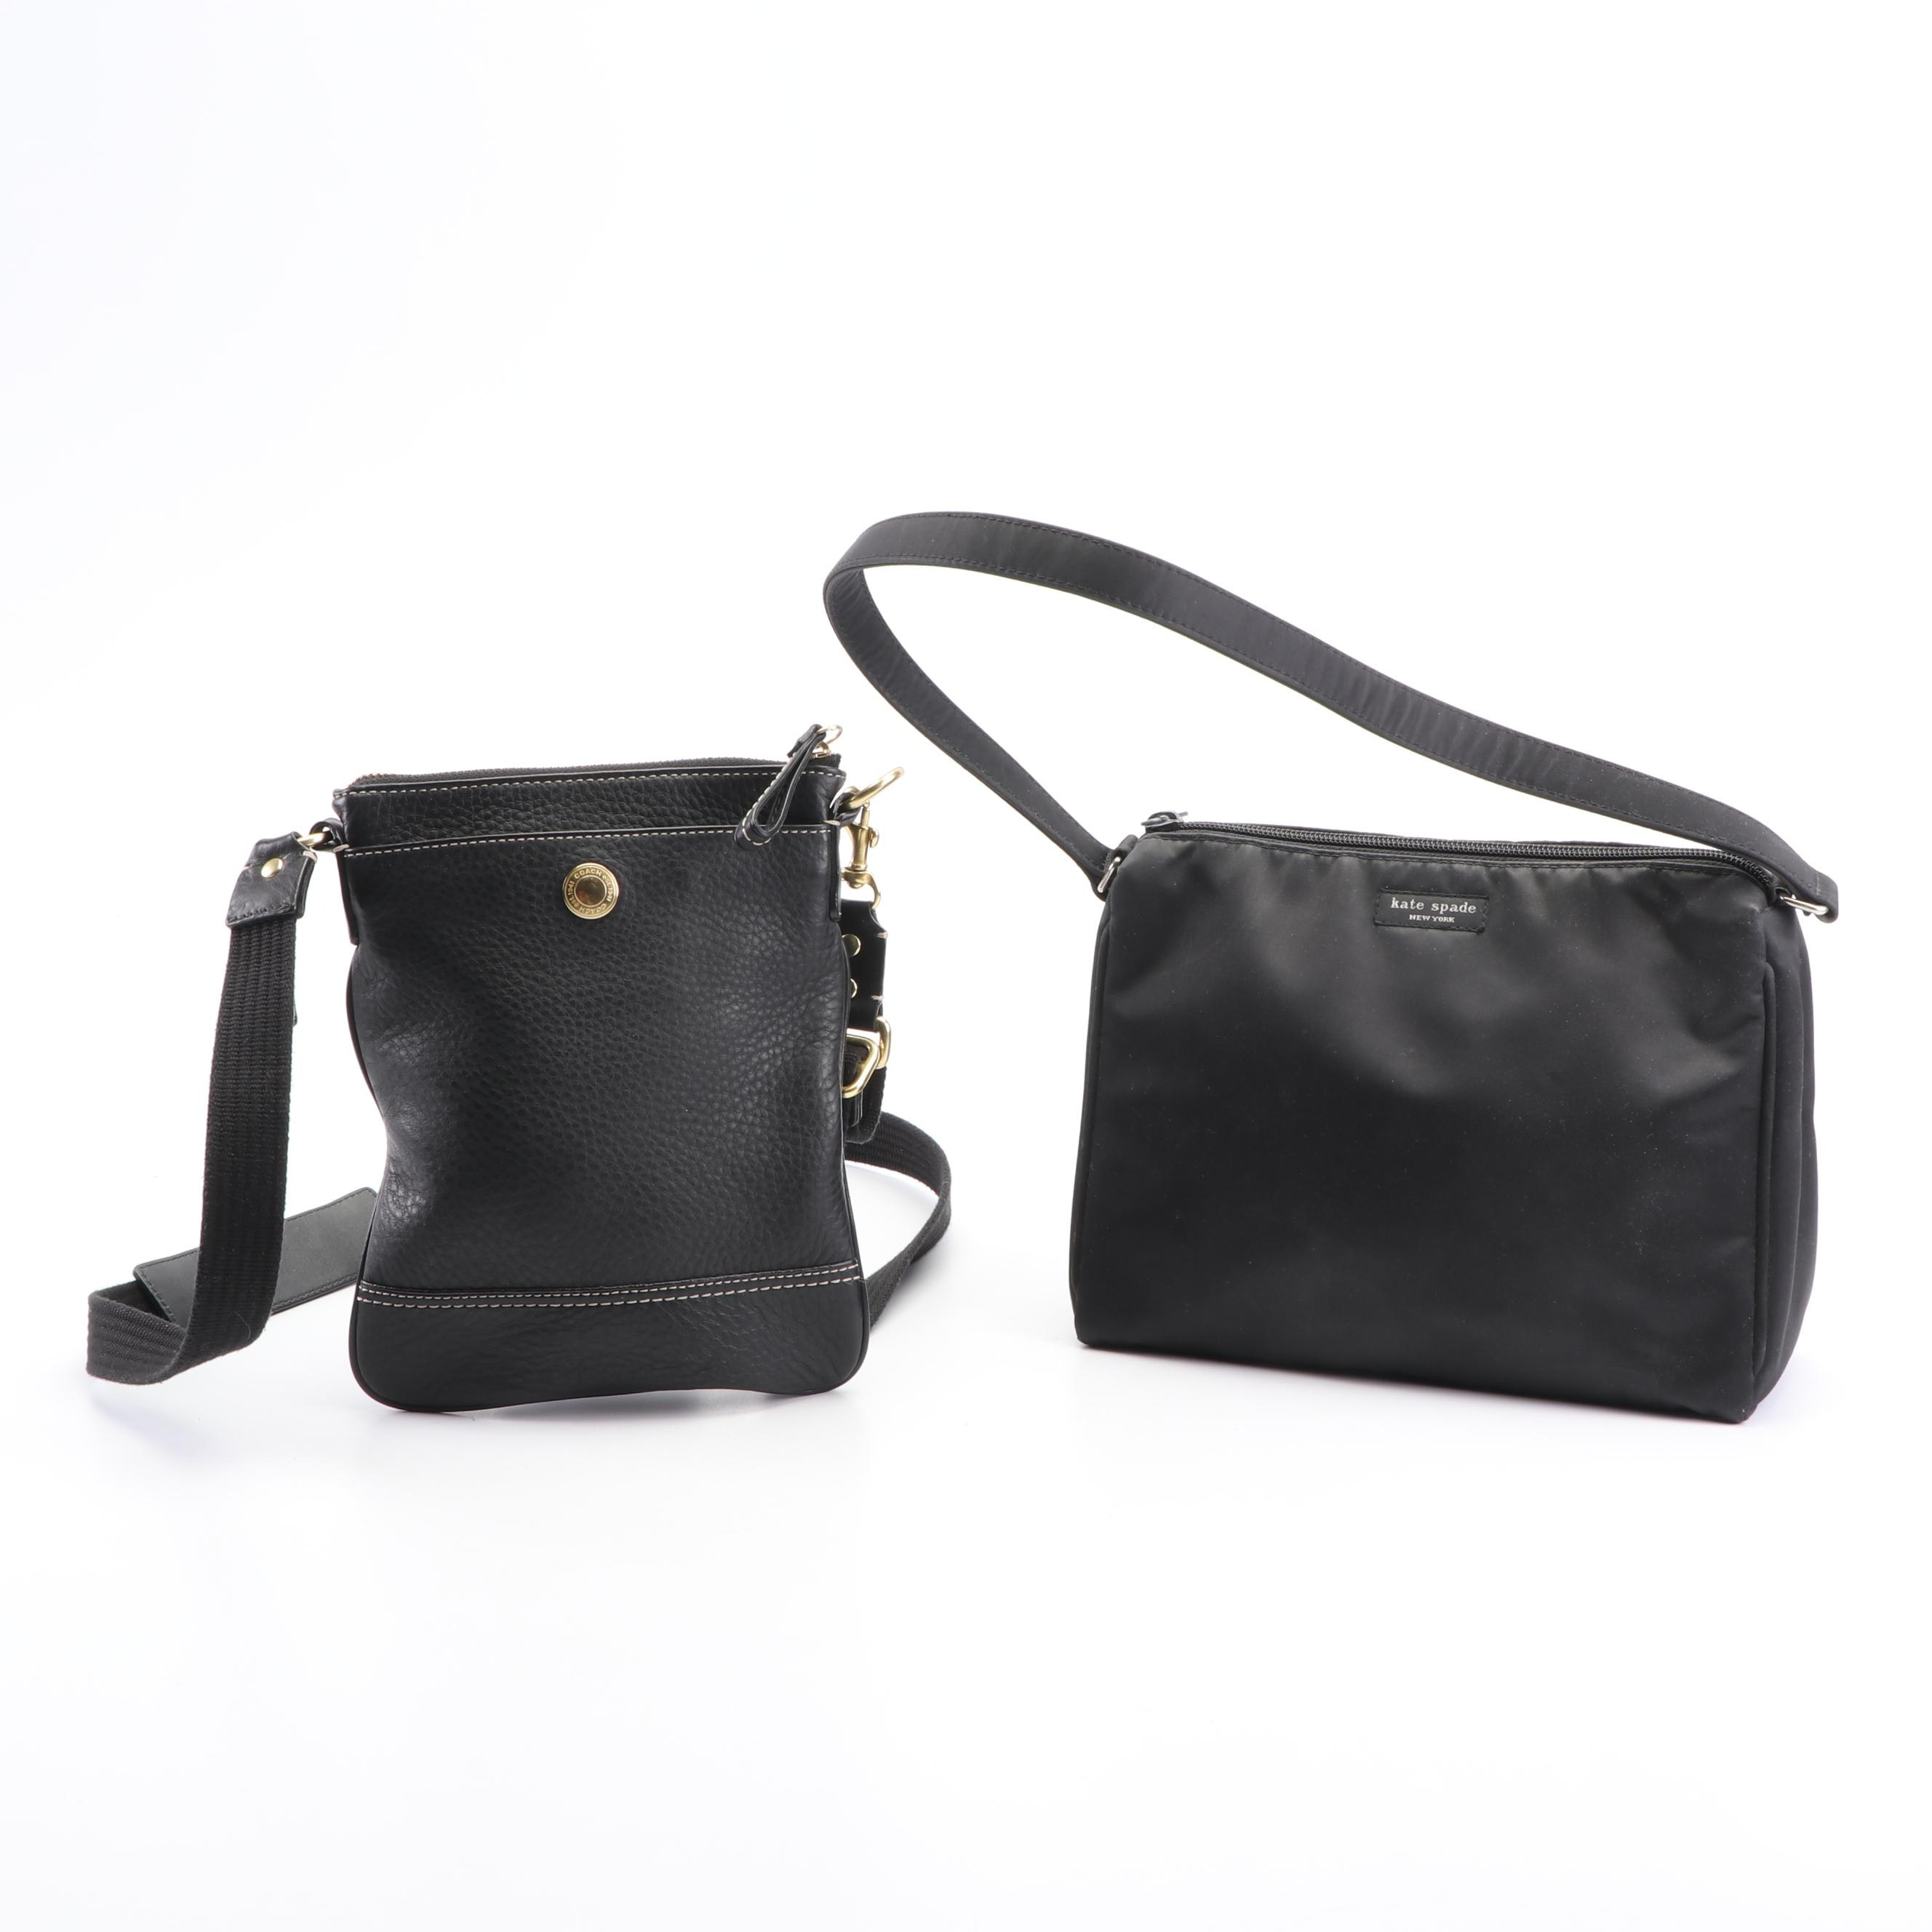 Coach Black Pebbled Leather Crossbody and Kate Spade New York Nylon Handbag